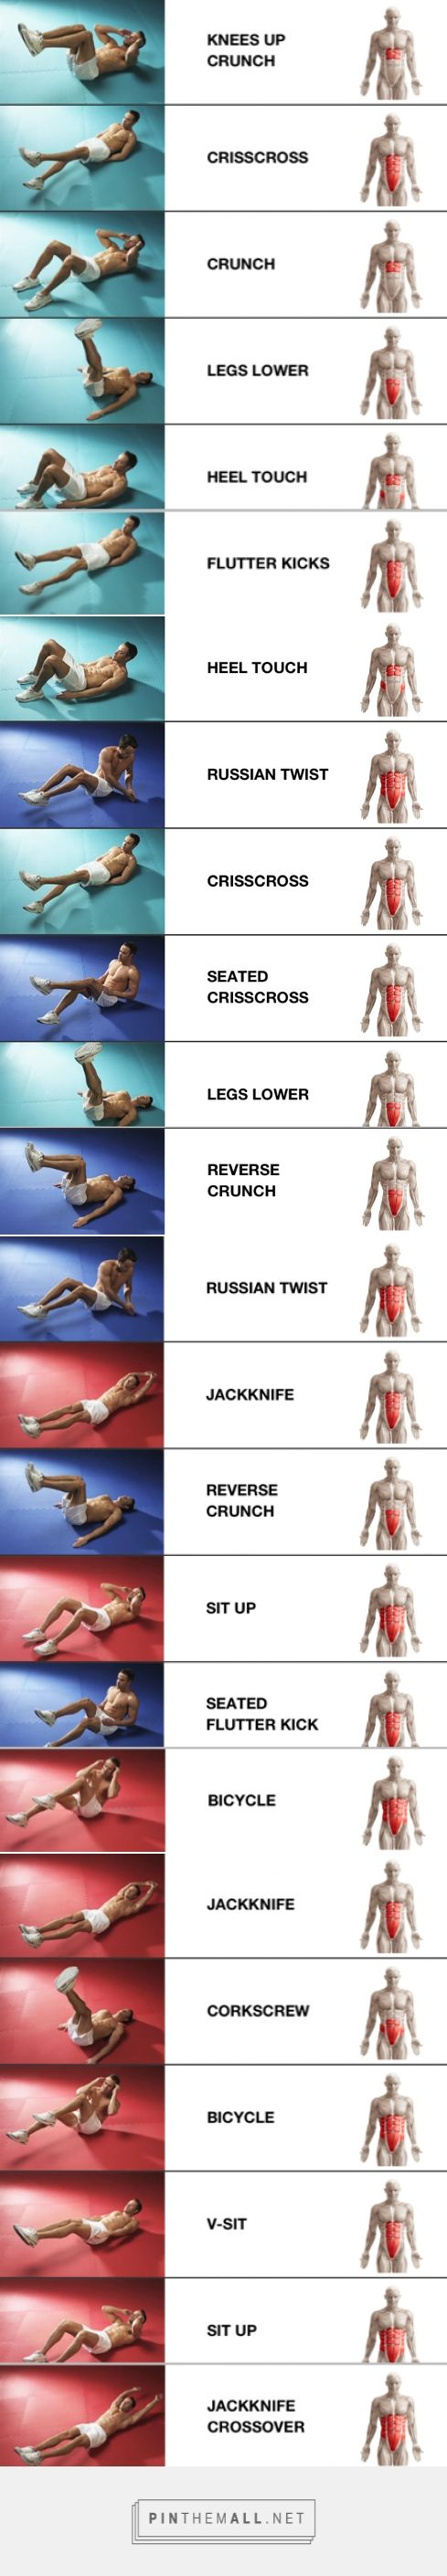 Core workouts, Easiest to Hardest